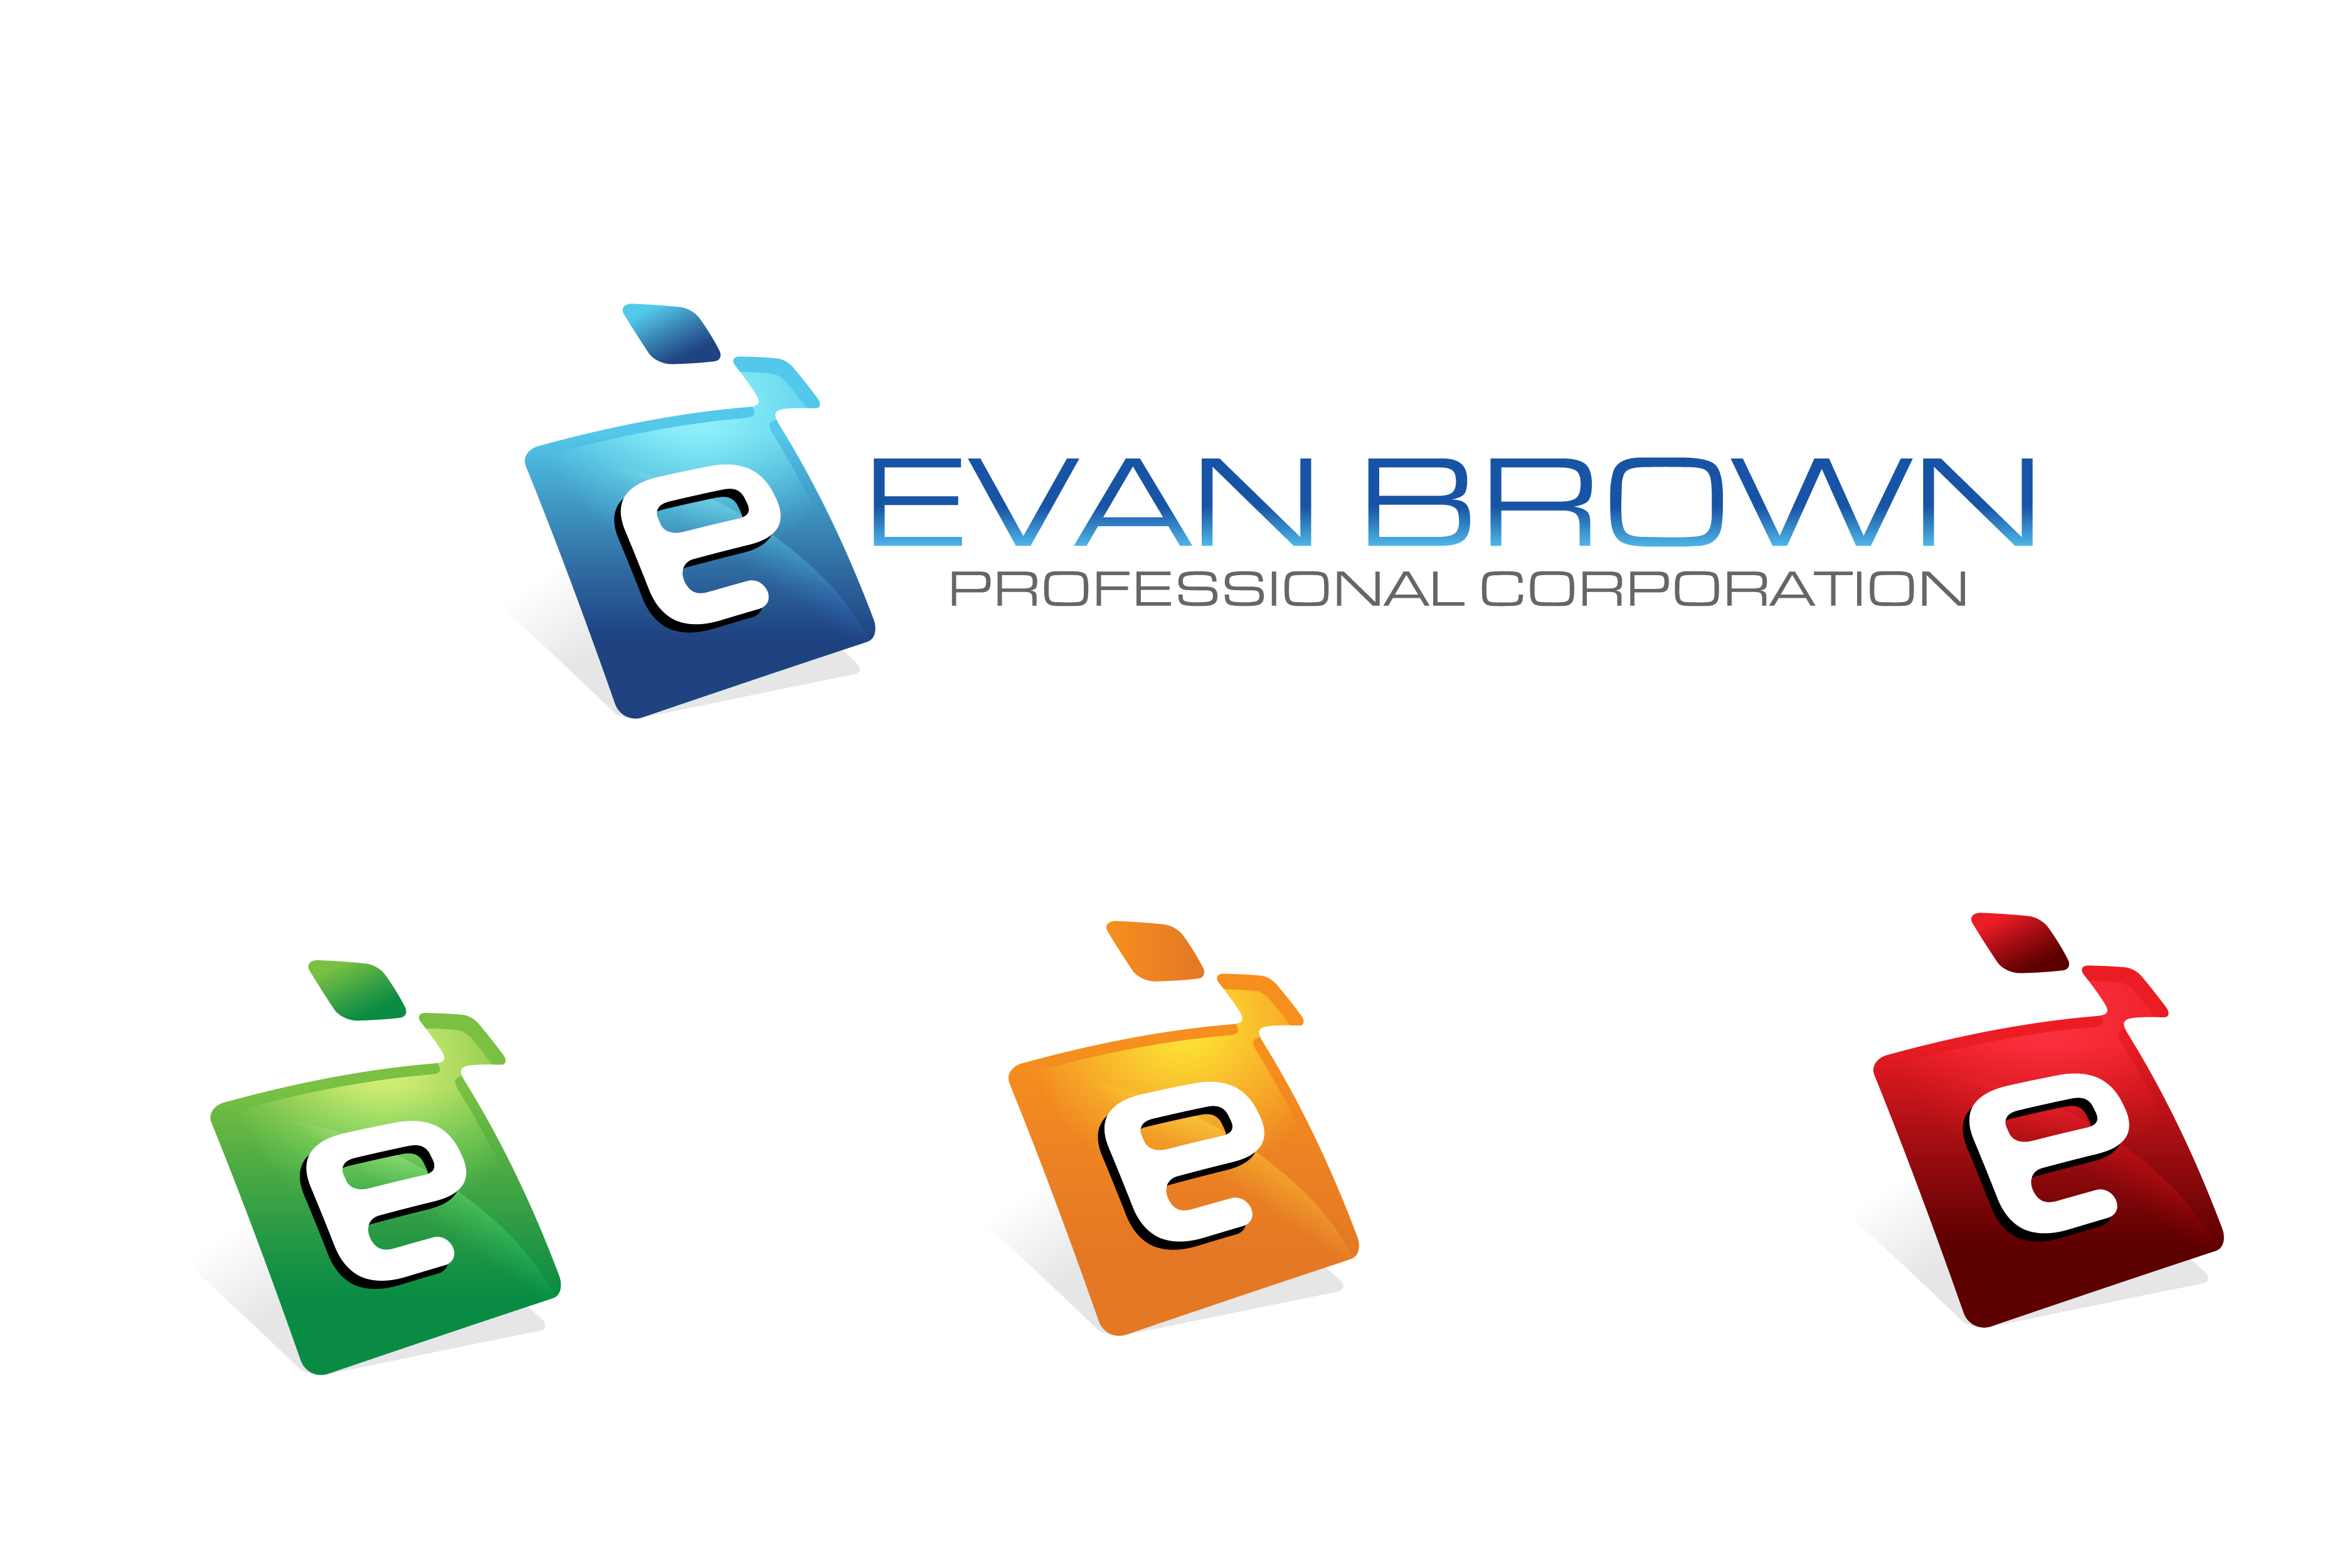 Logo Design by Private User - Entry No. 110 in the Logo Design Contest Inspiring Logo Design for Evan Brown Professional Corporation.